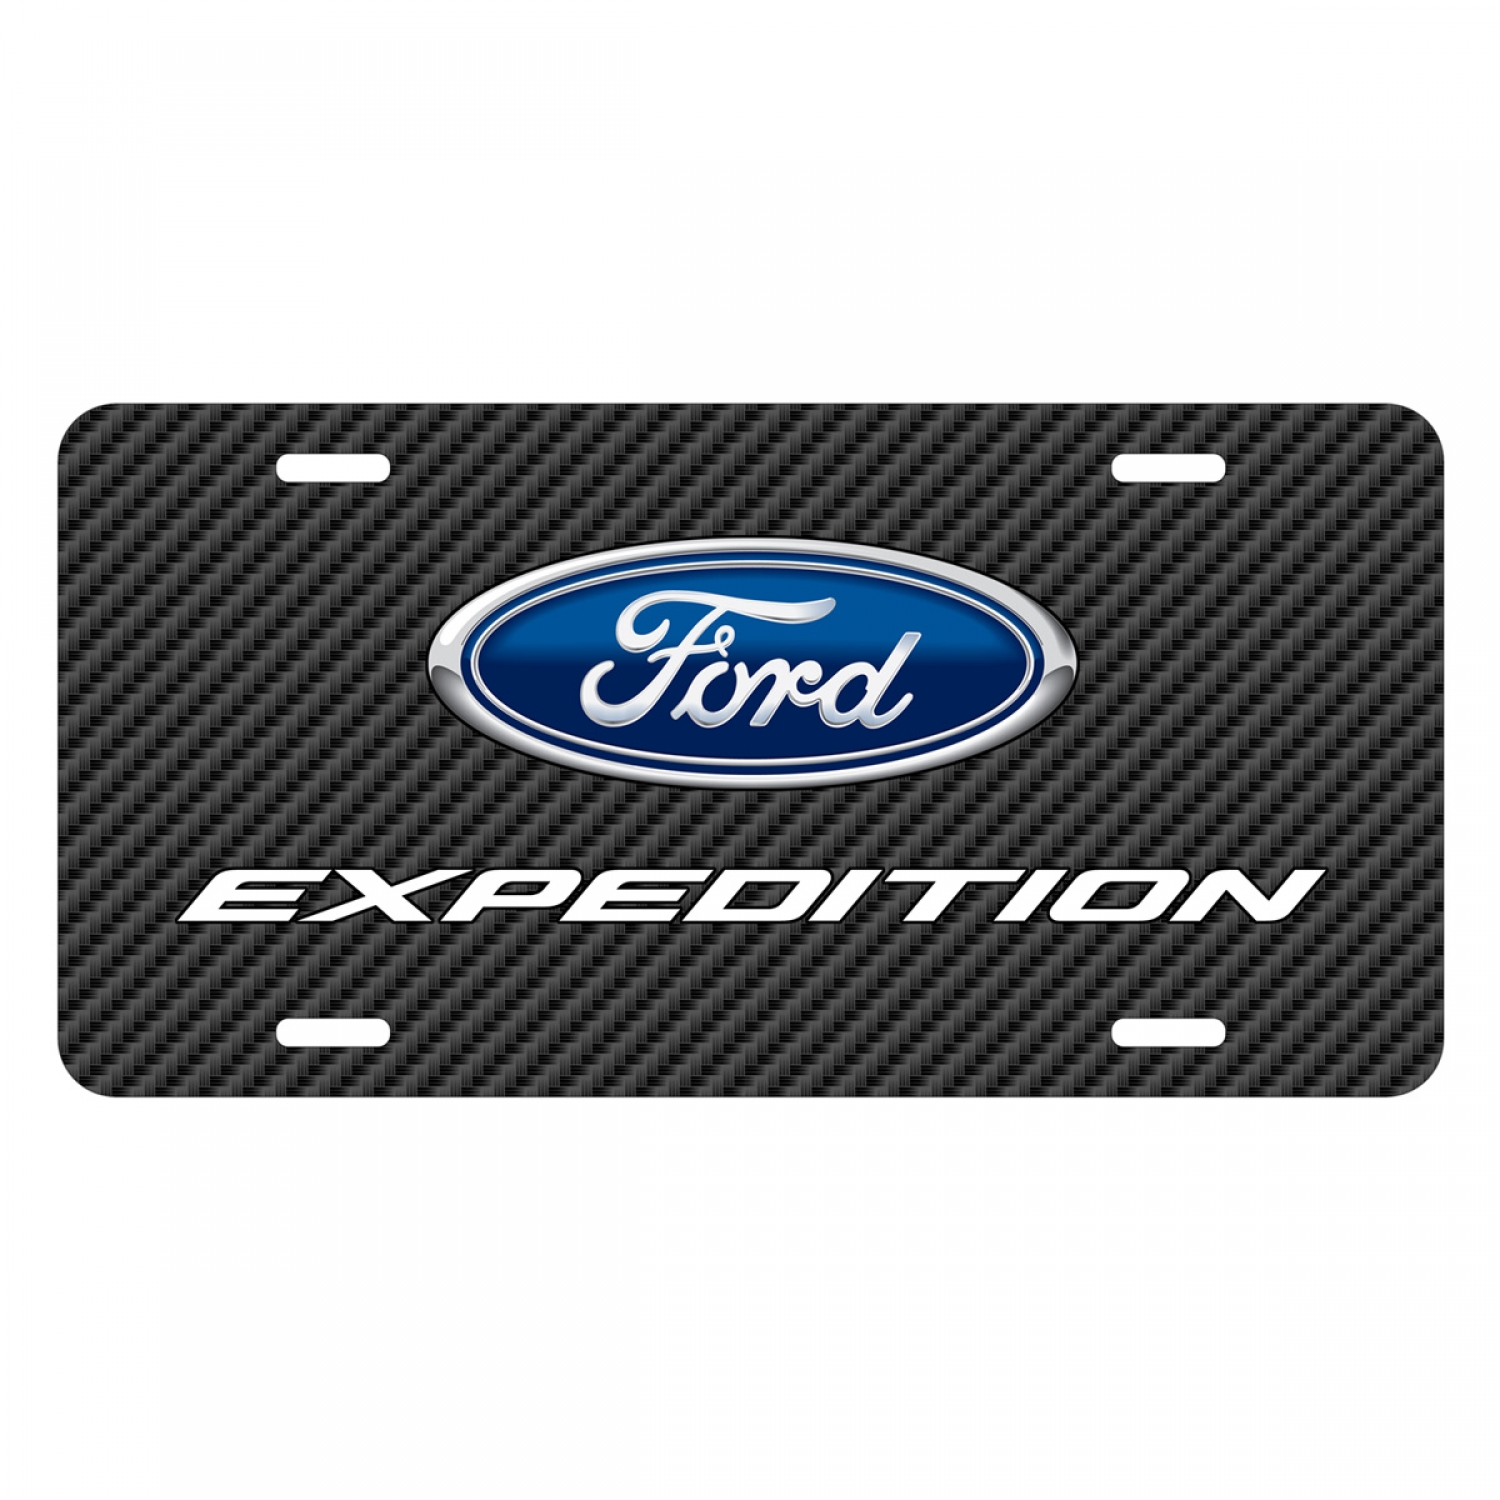 Ford Expedition Black Carbon Fiber Texture Graphic UV Metal License Plate